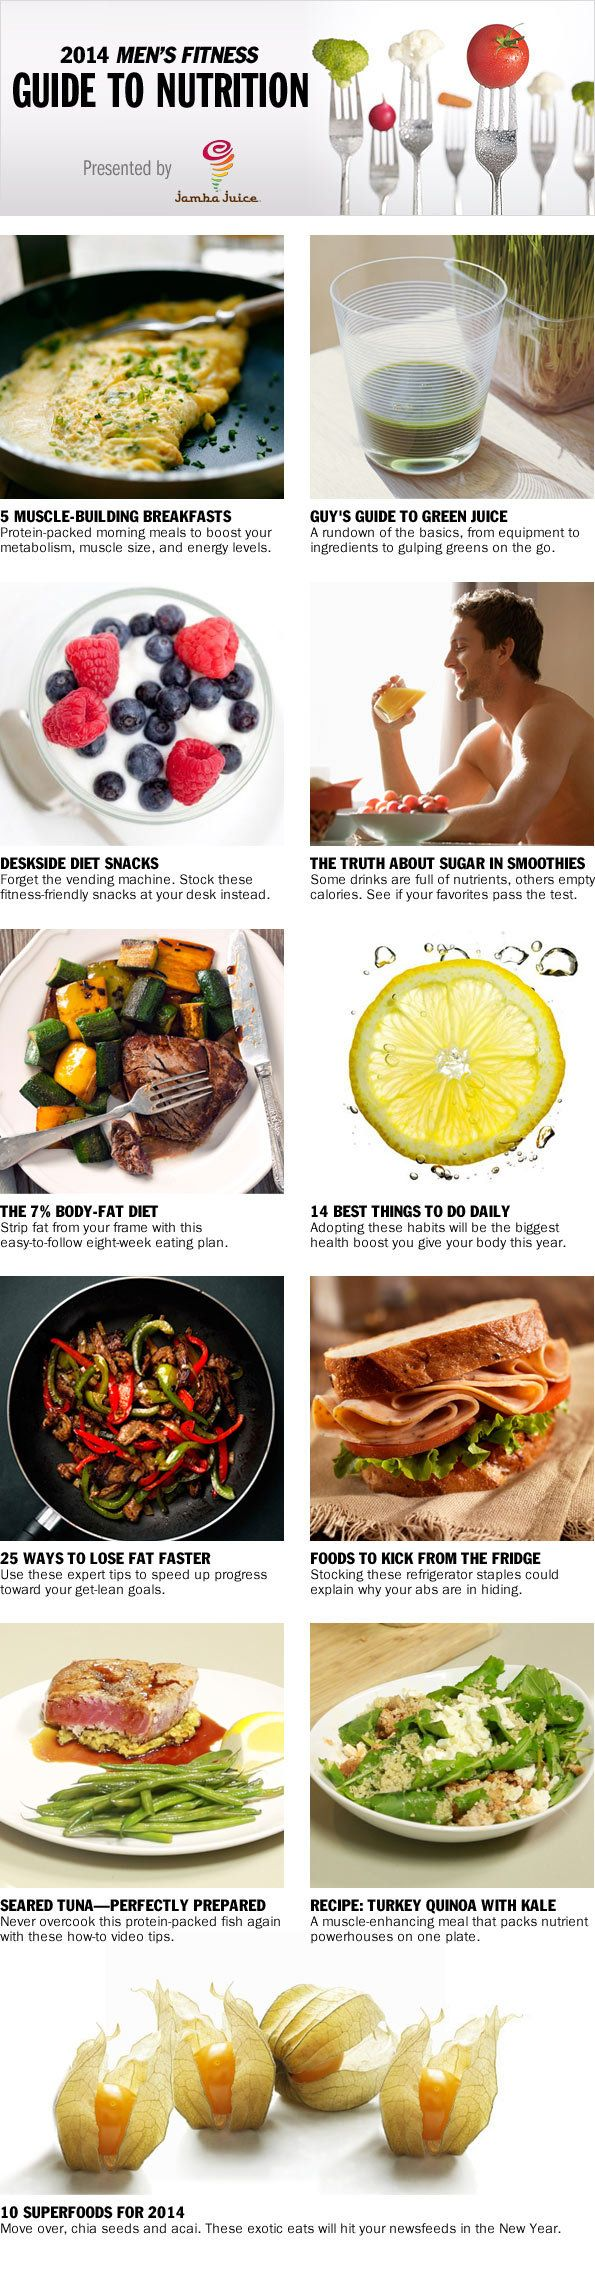 The 2014 Men's Fitness Guide to Nutrition (With images